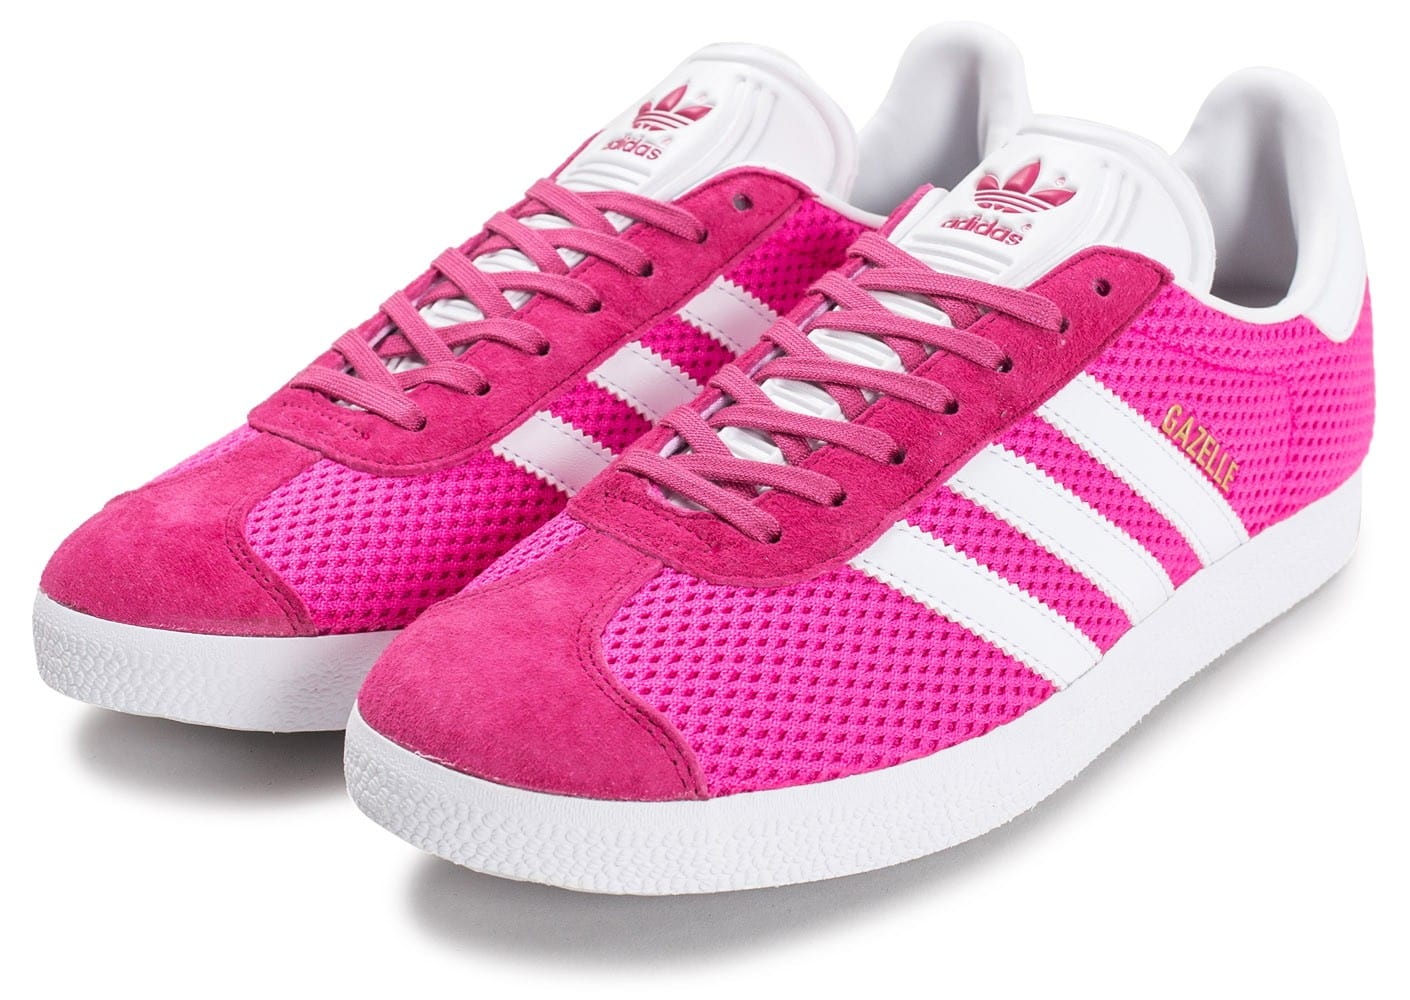 Rose Chaussure Fluo Femme Chaussure Adidas Rose Chaussure